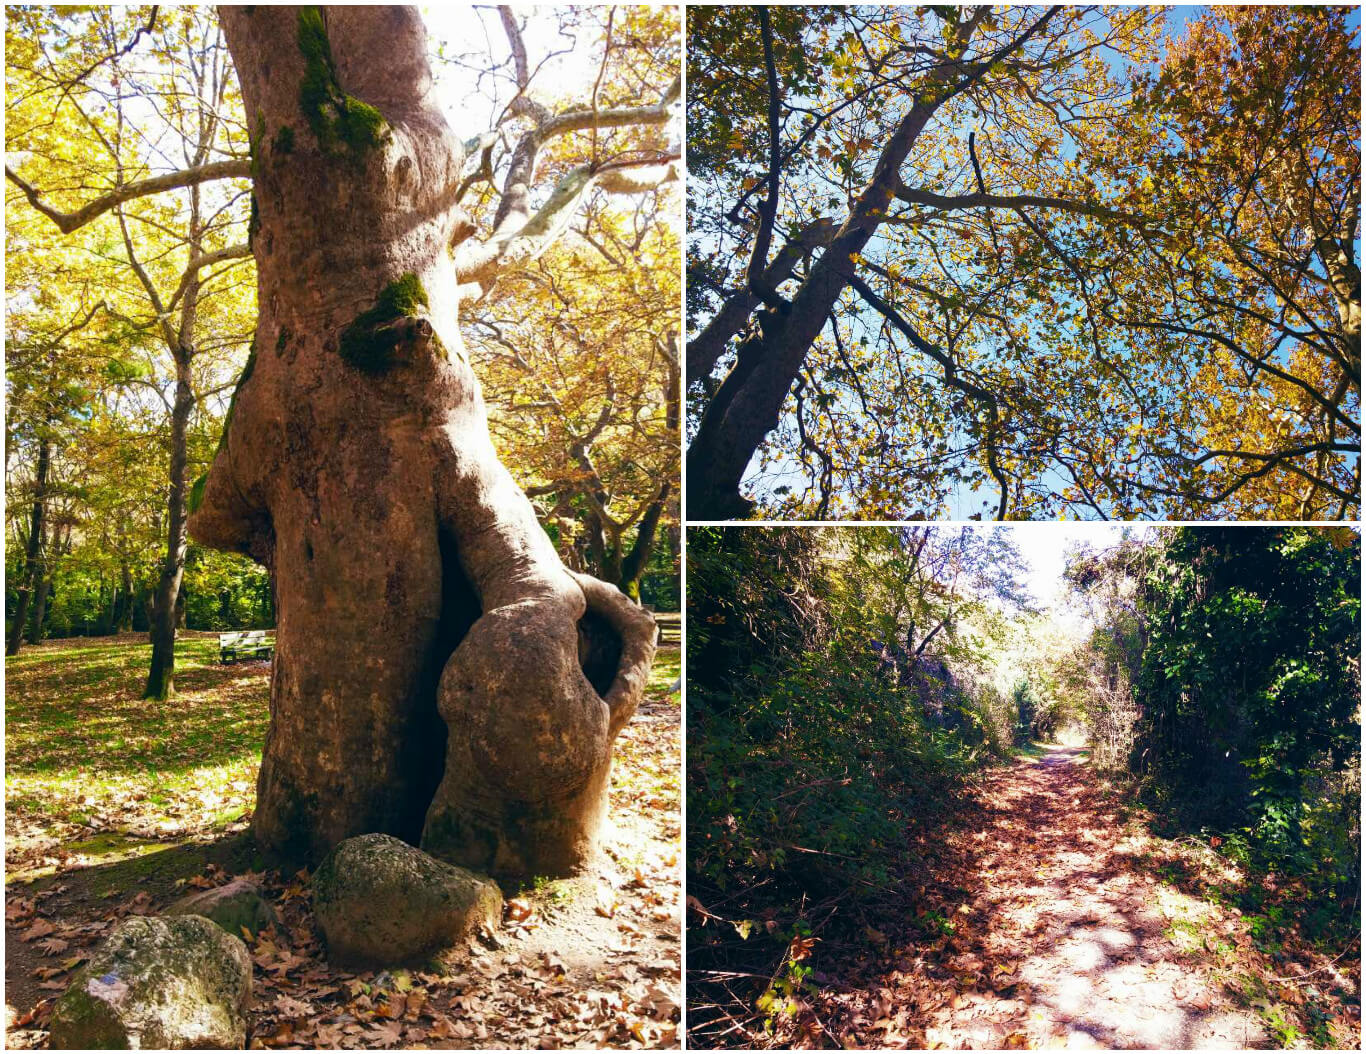 naousa-agios-nikolaos-collage-1